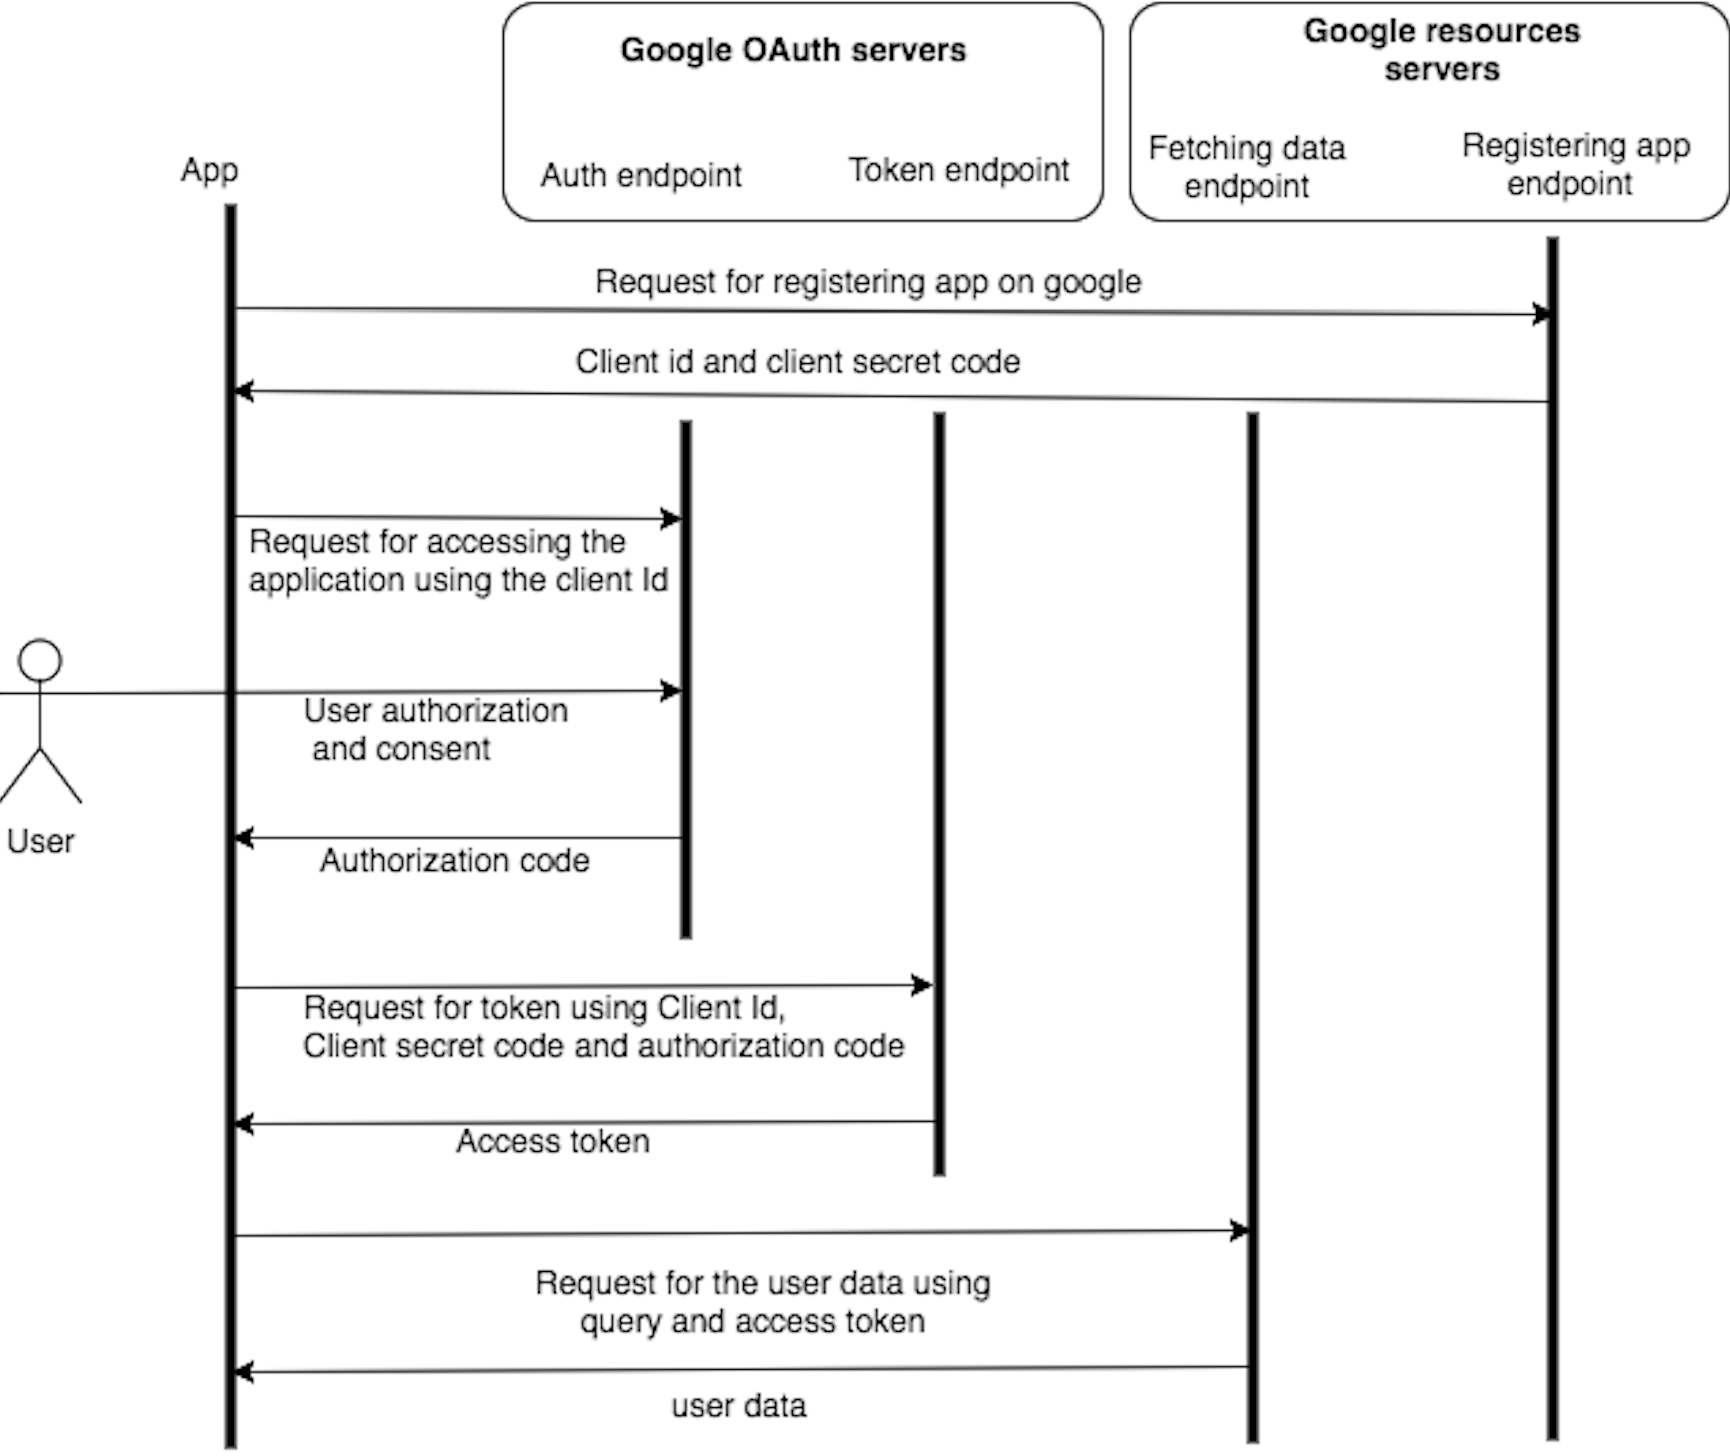 A beginners guide to Google OAuth and Google APIs - Ashok